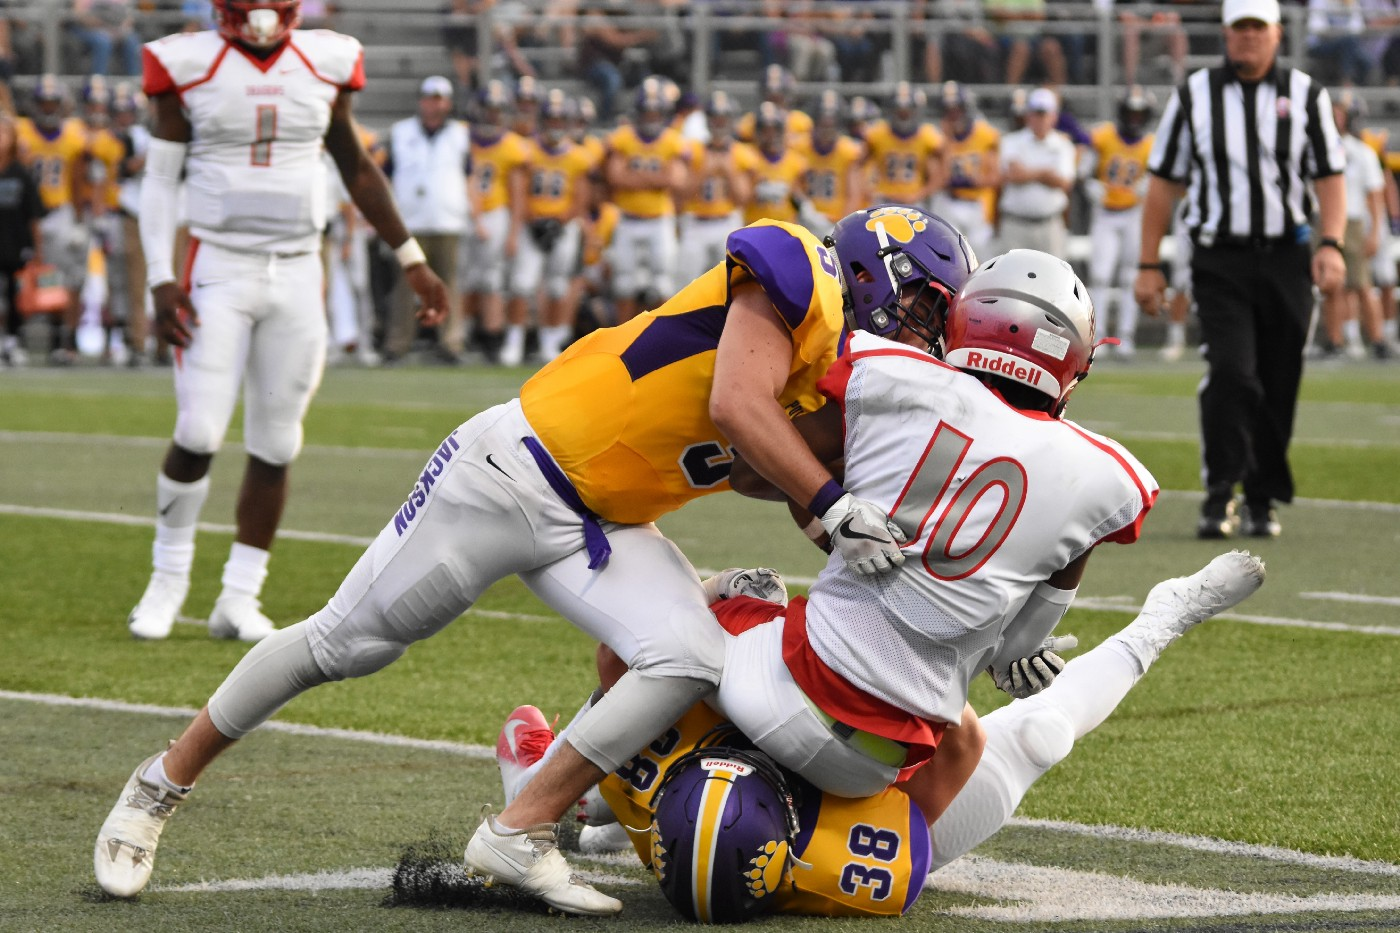 Football player tackles another on the field.